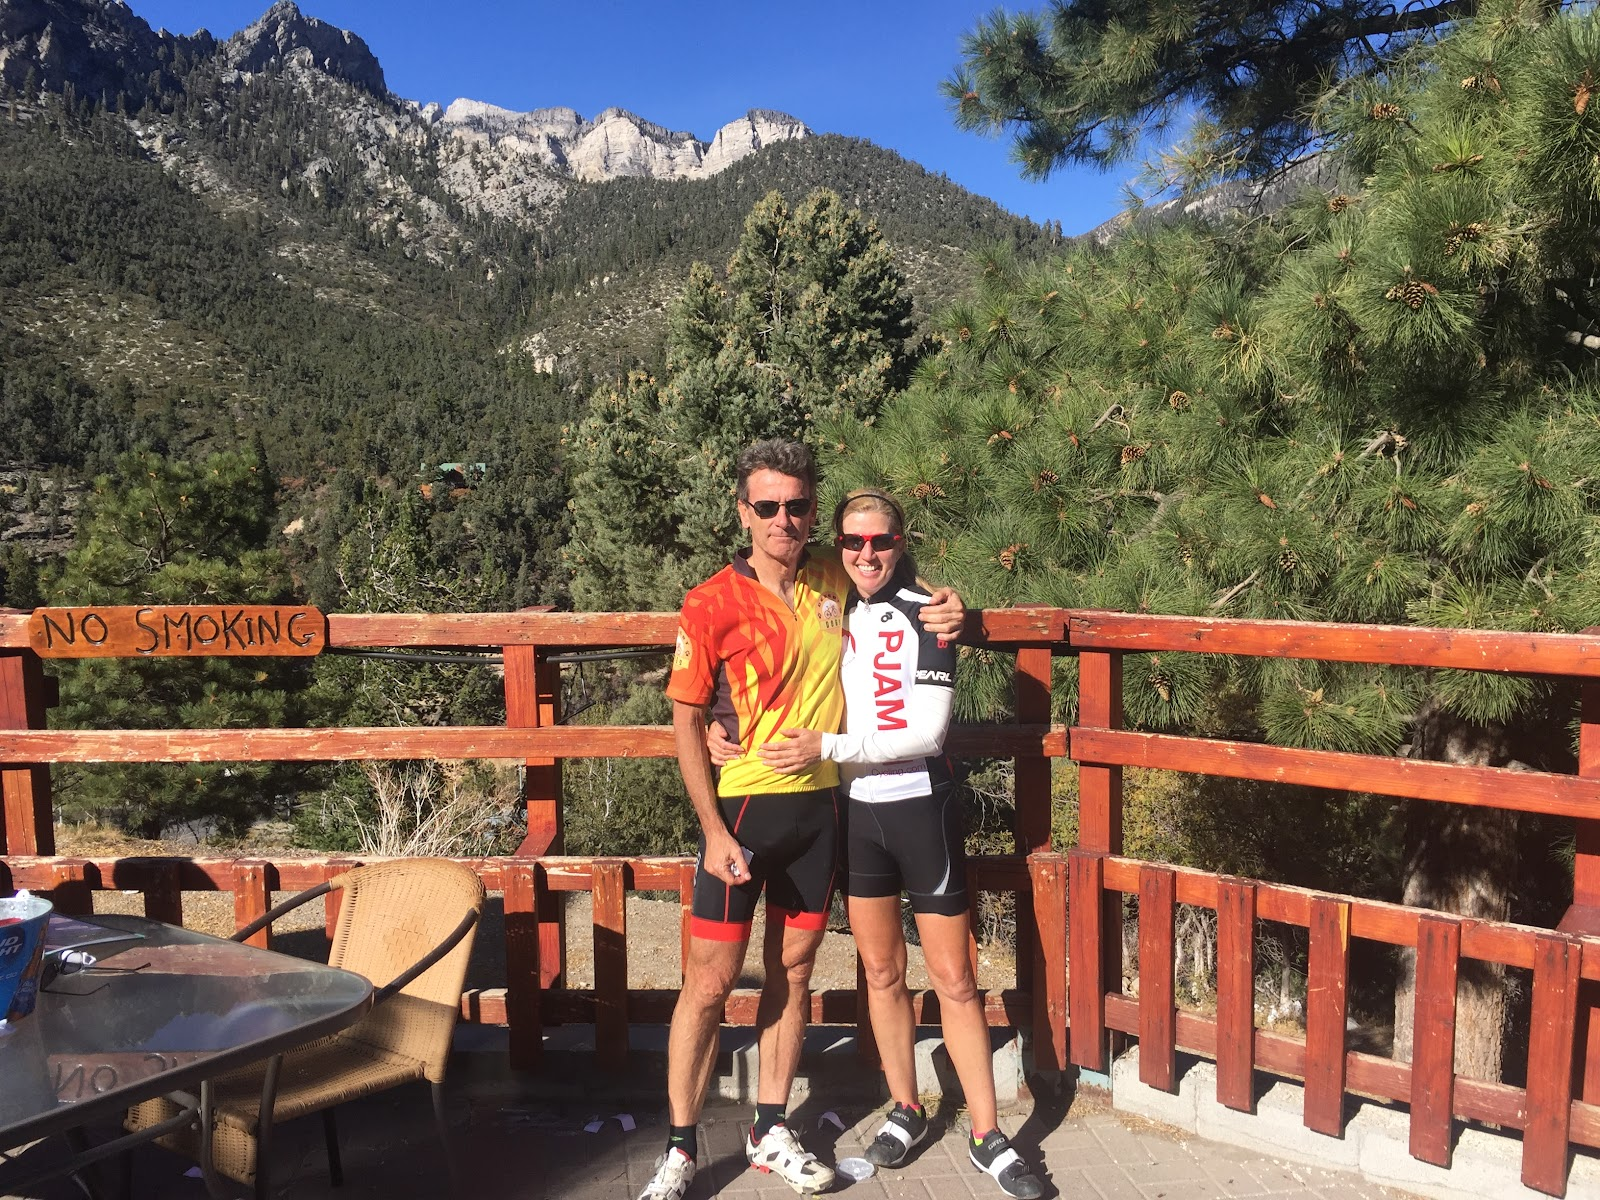 Cyclists at Mt. Charleston Resort.